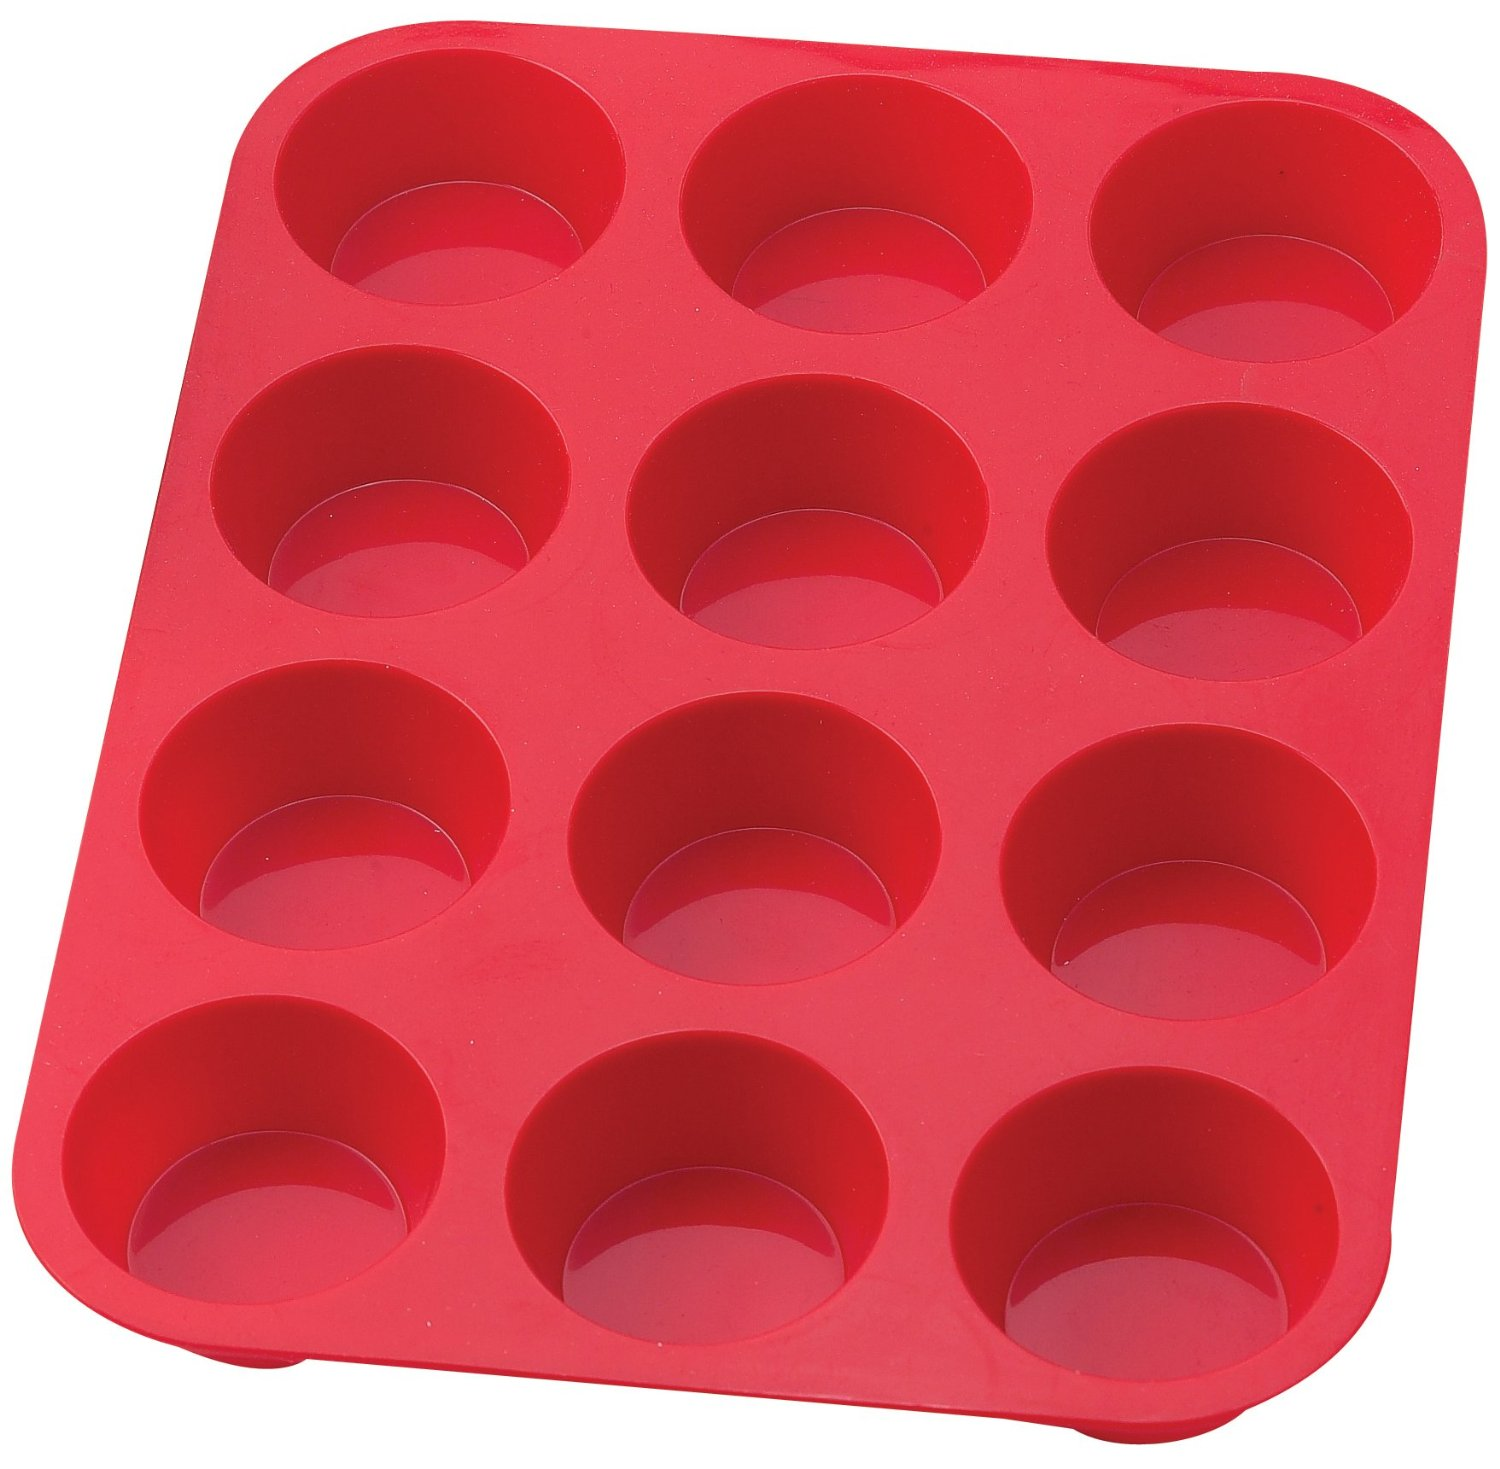 Cook Essentials 12cups Silicone Muffin Pan & Bakeware & Baking Pan